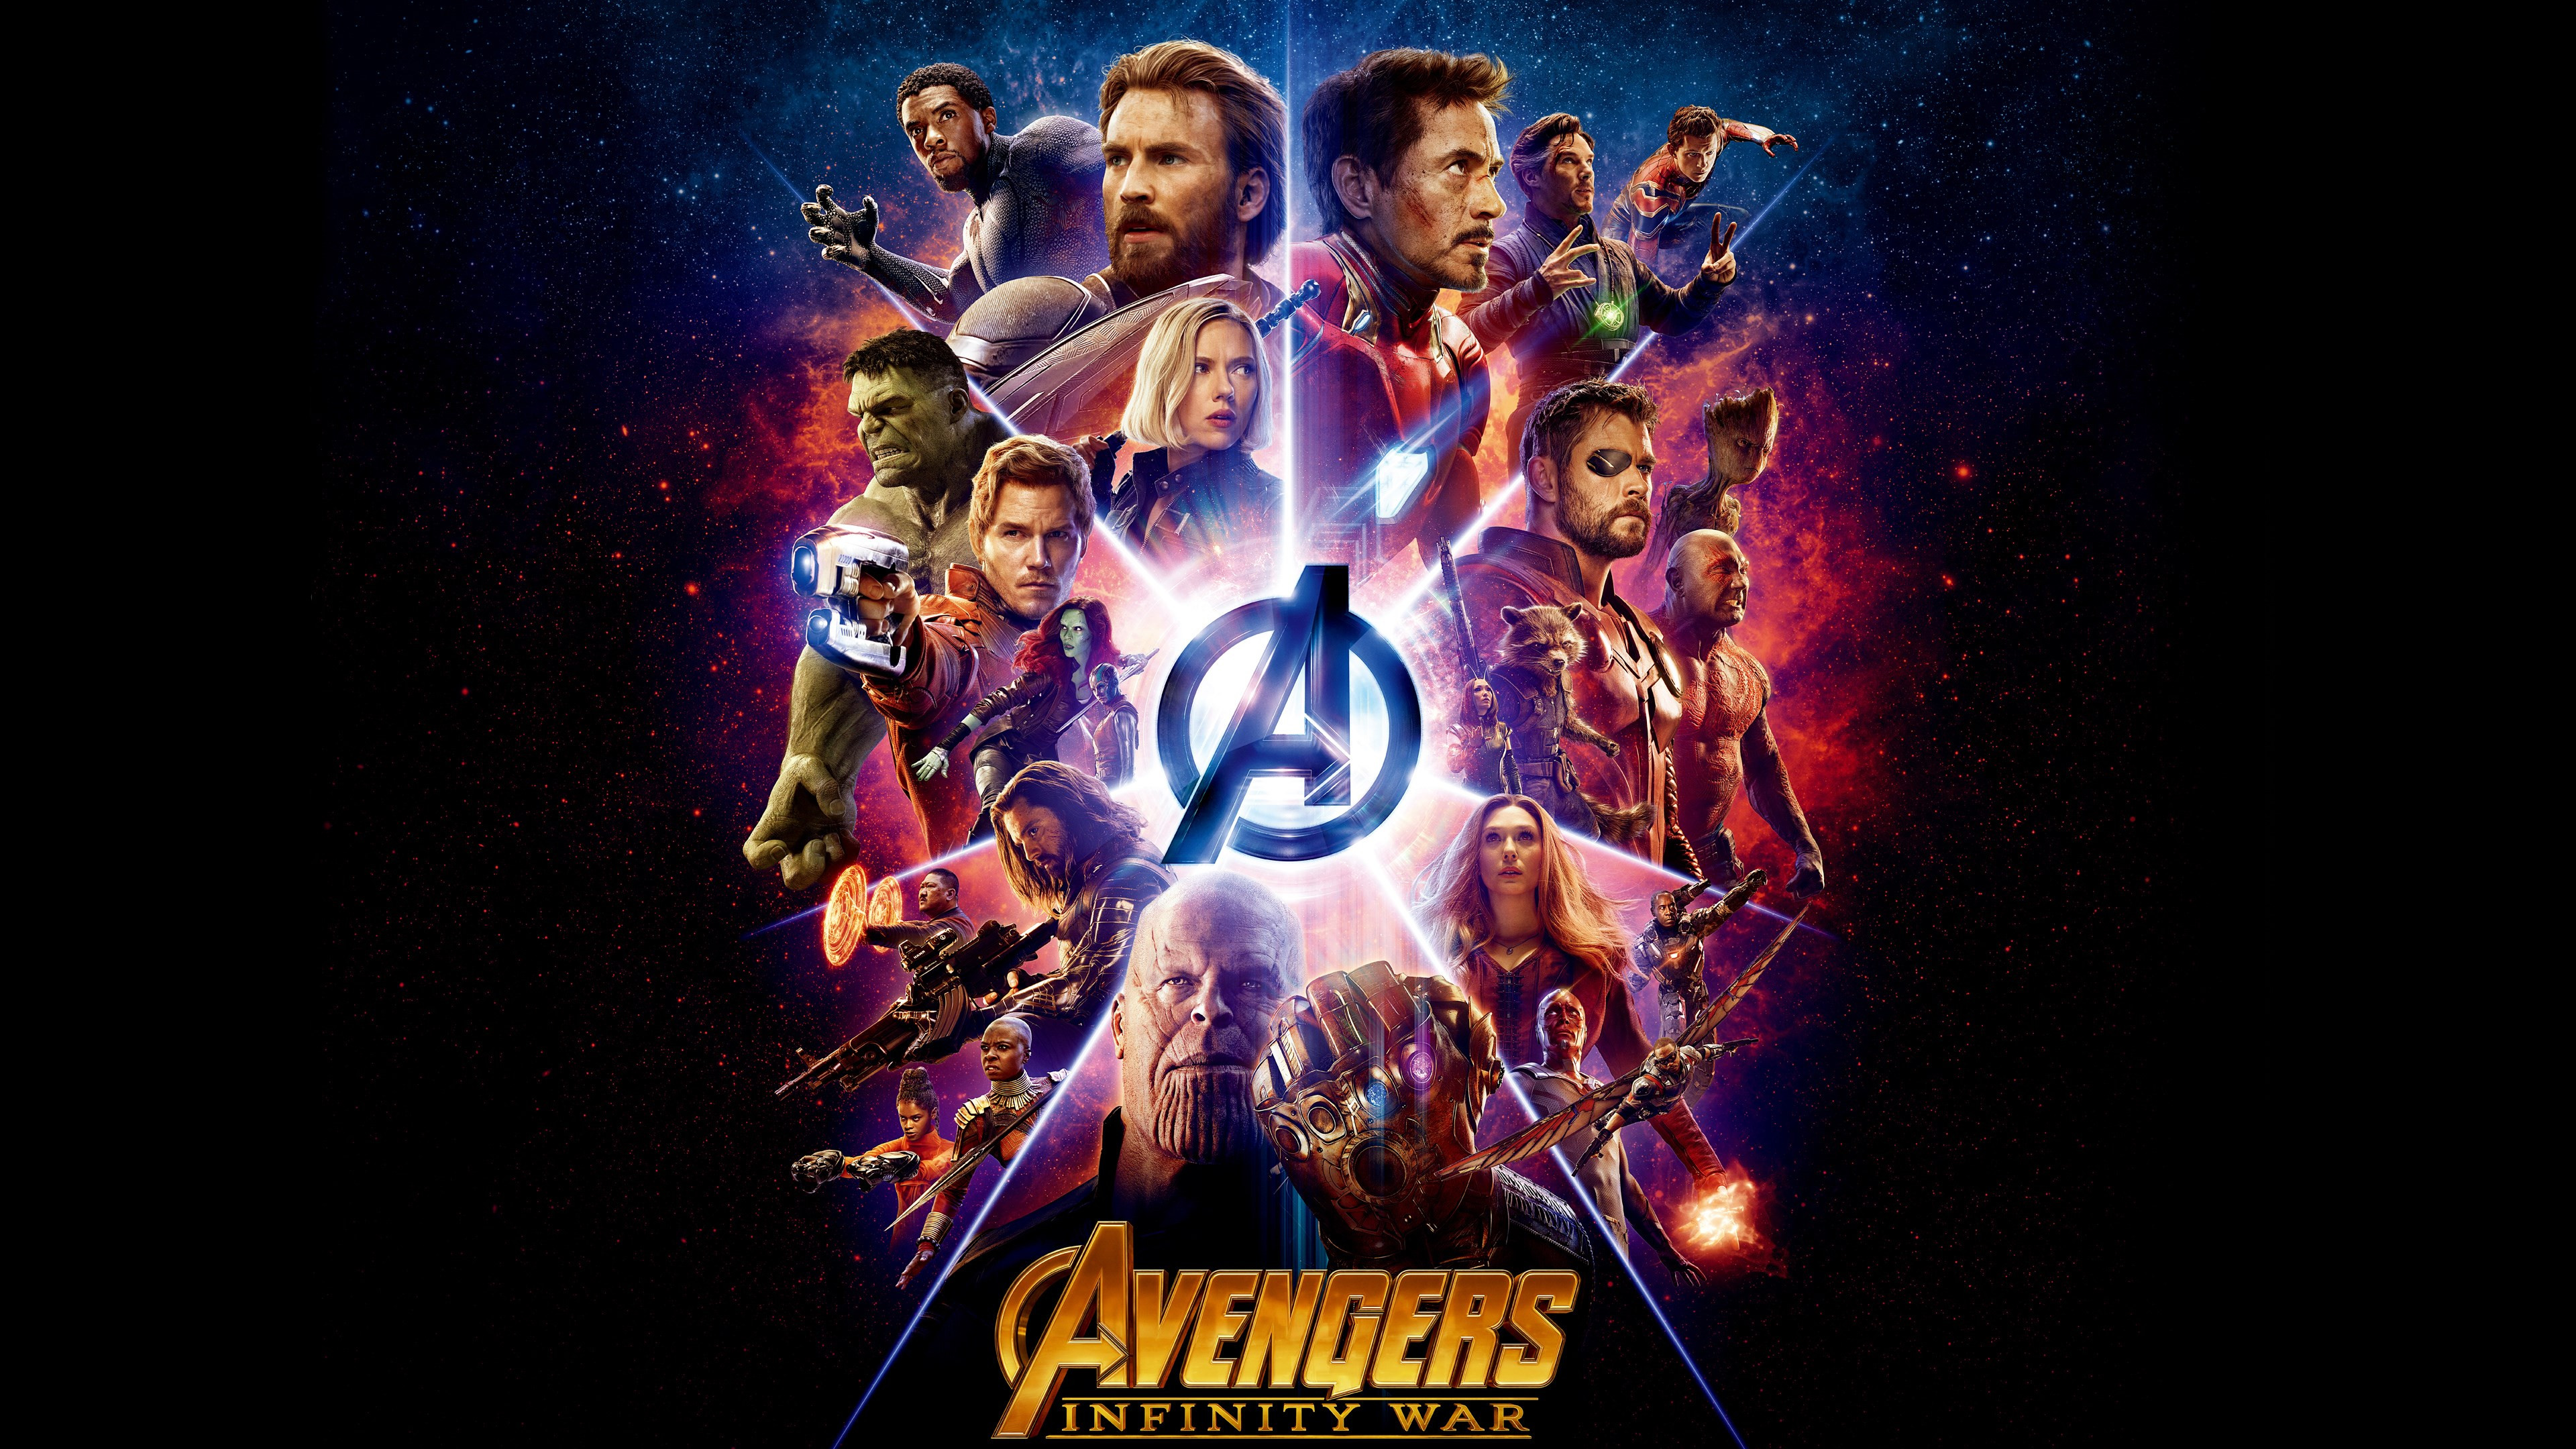 All the heroes from Avengers: Infinity War wallpaper 3840x2160